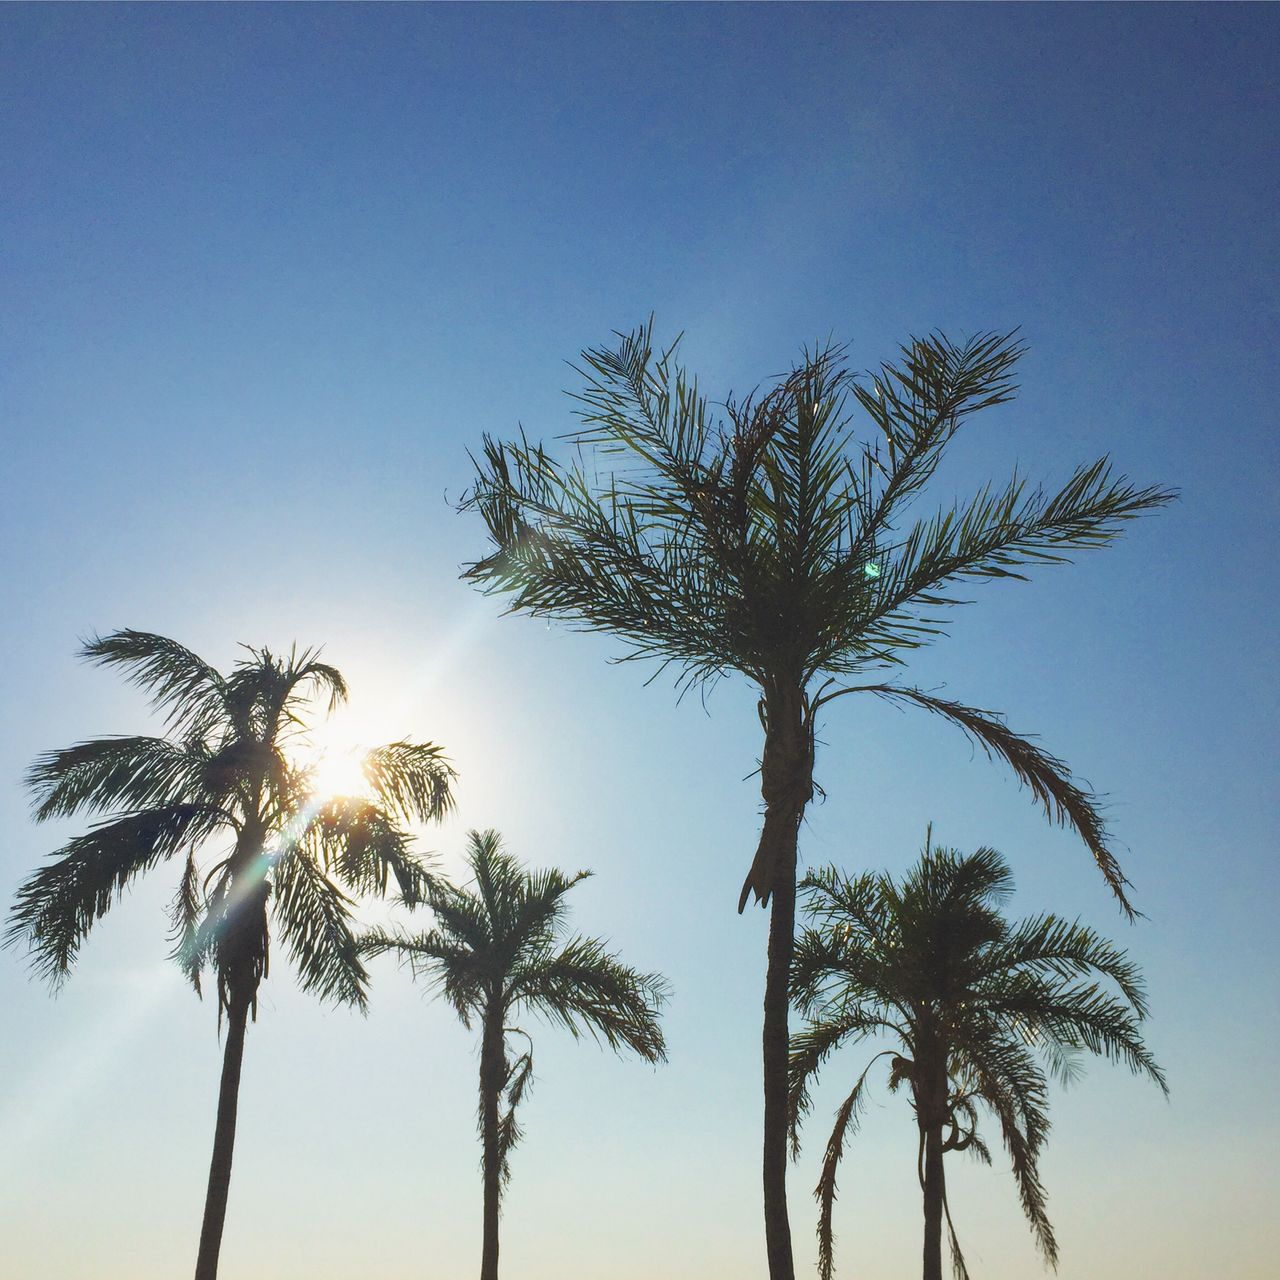 palm tree, sky, tropical climate, tree, growth, plant, low angle view, beauty in nature, clear sky, tranquility, nature, tree trunk, trunk, scenics - nature, no people, tranquil scene, tropical tree, sunlight, outdoors, tall - high, coconut palm tree, palm leaf, treetop